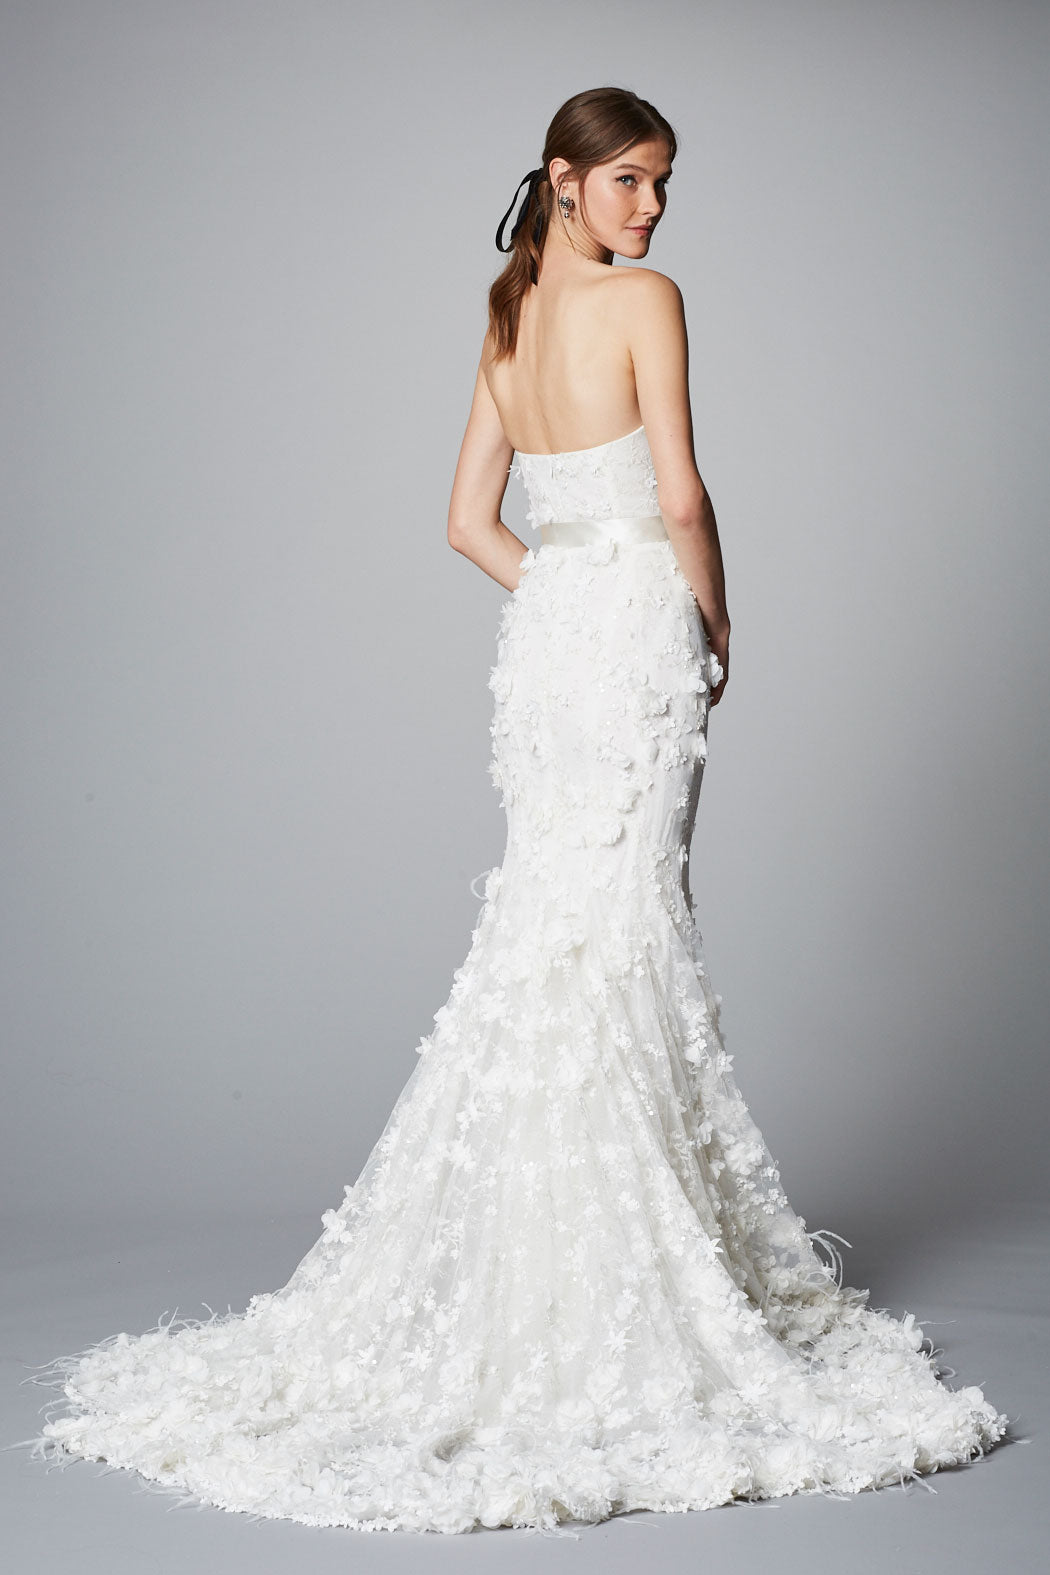 36dbaa412a5 Esme. Contact Bridal Concierge